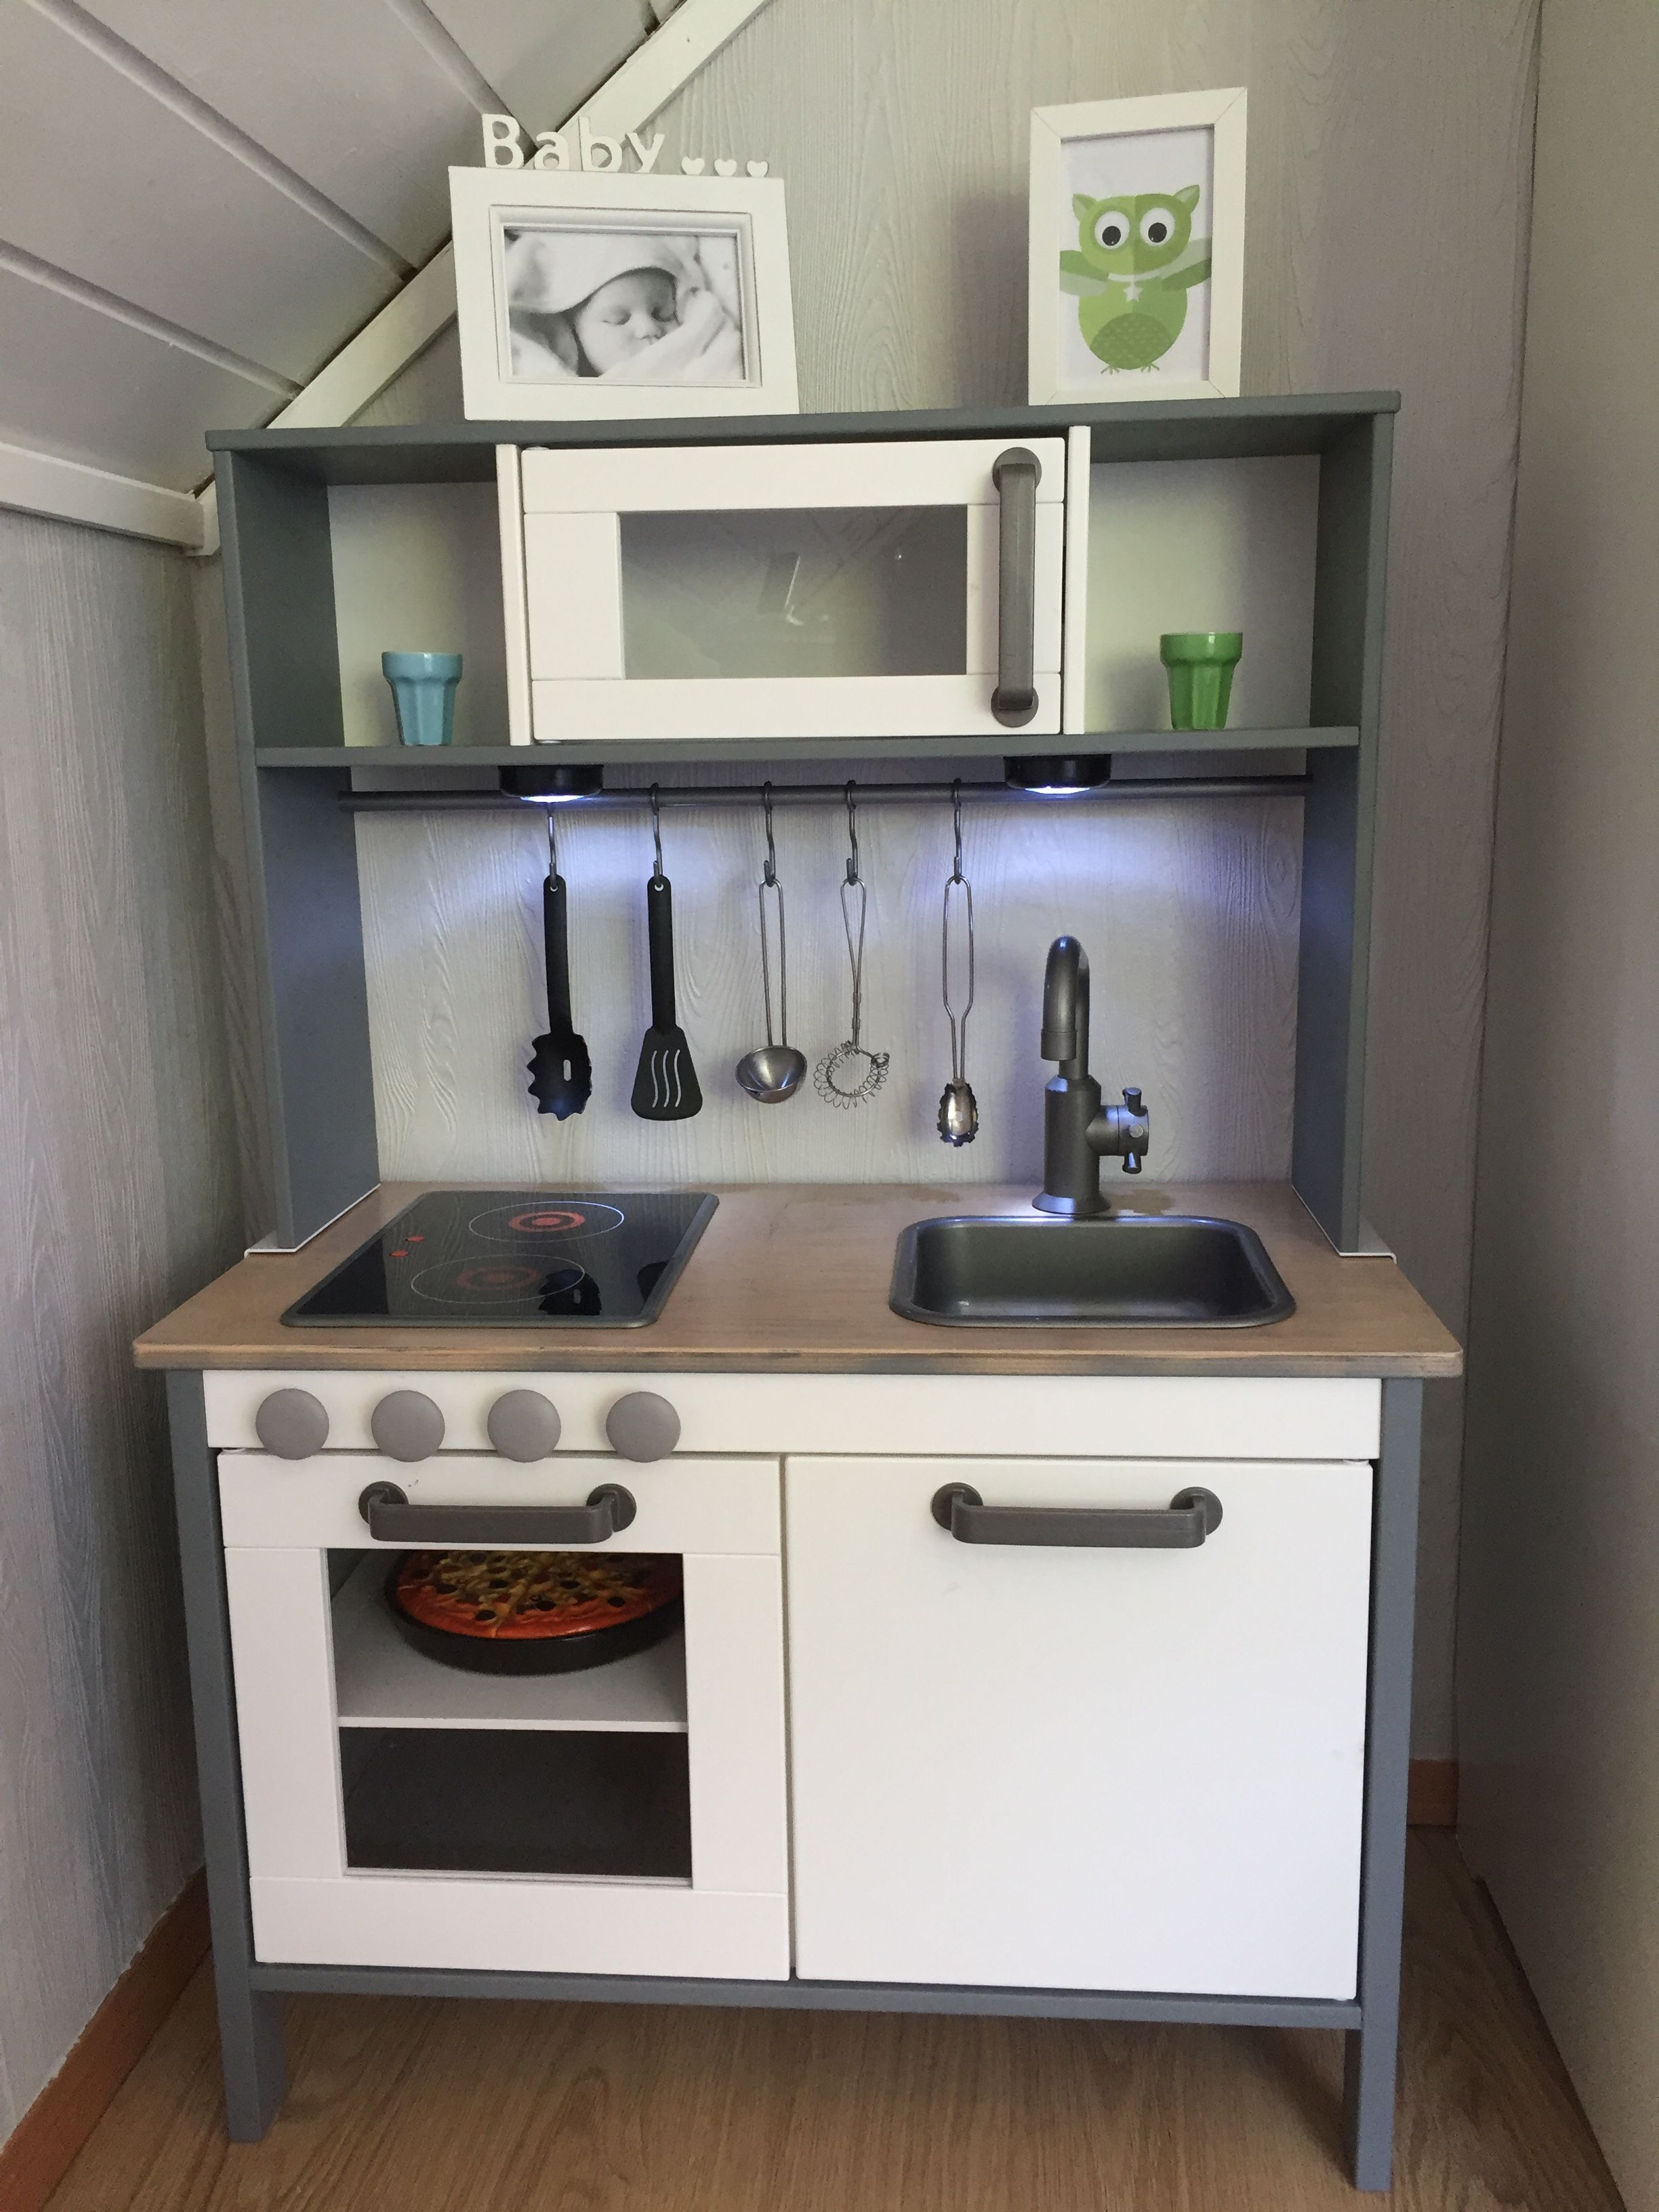 Ikea Duktig Küche Angebot 2017 Ikea Duktig Hack Kids Kitchen Spraypainted Grey K I D S R O O M